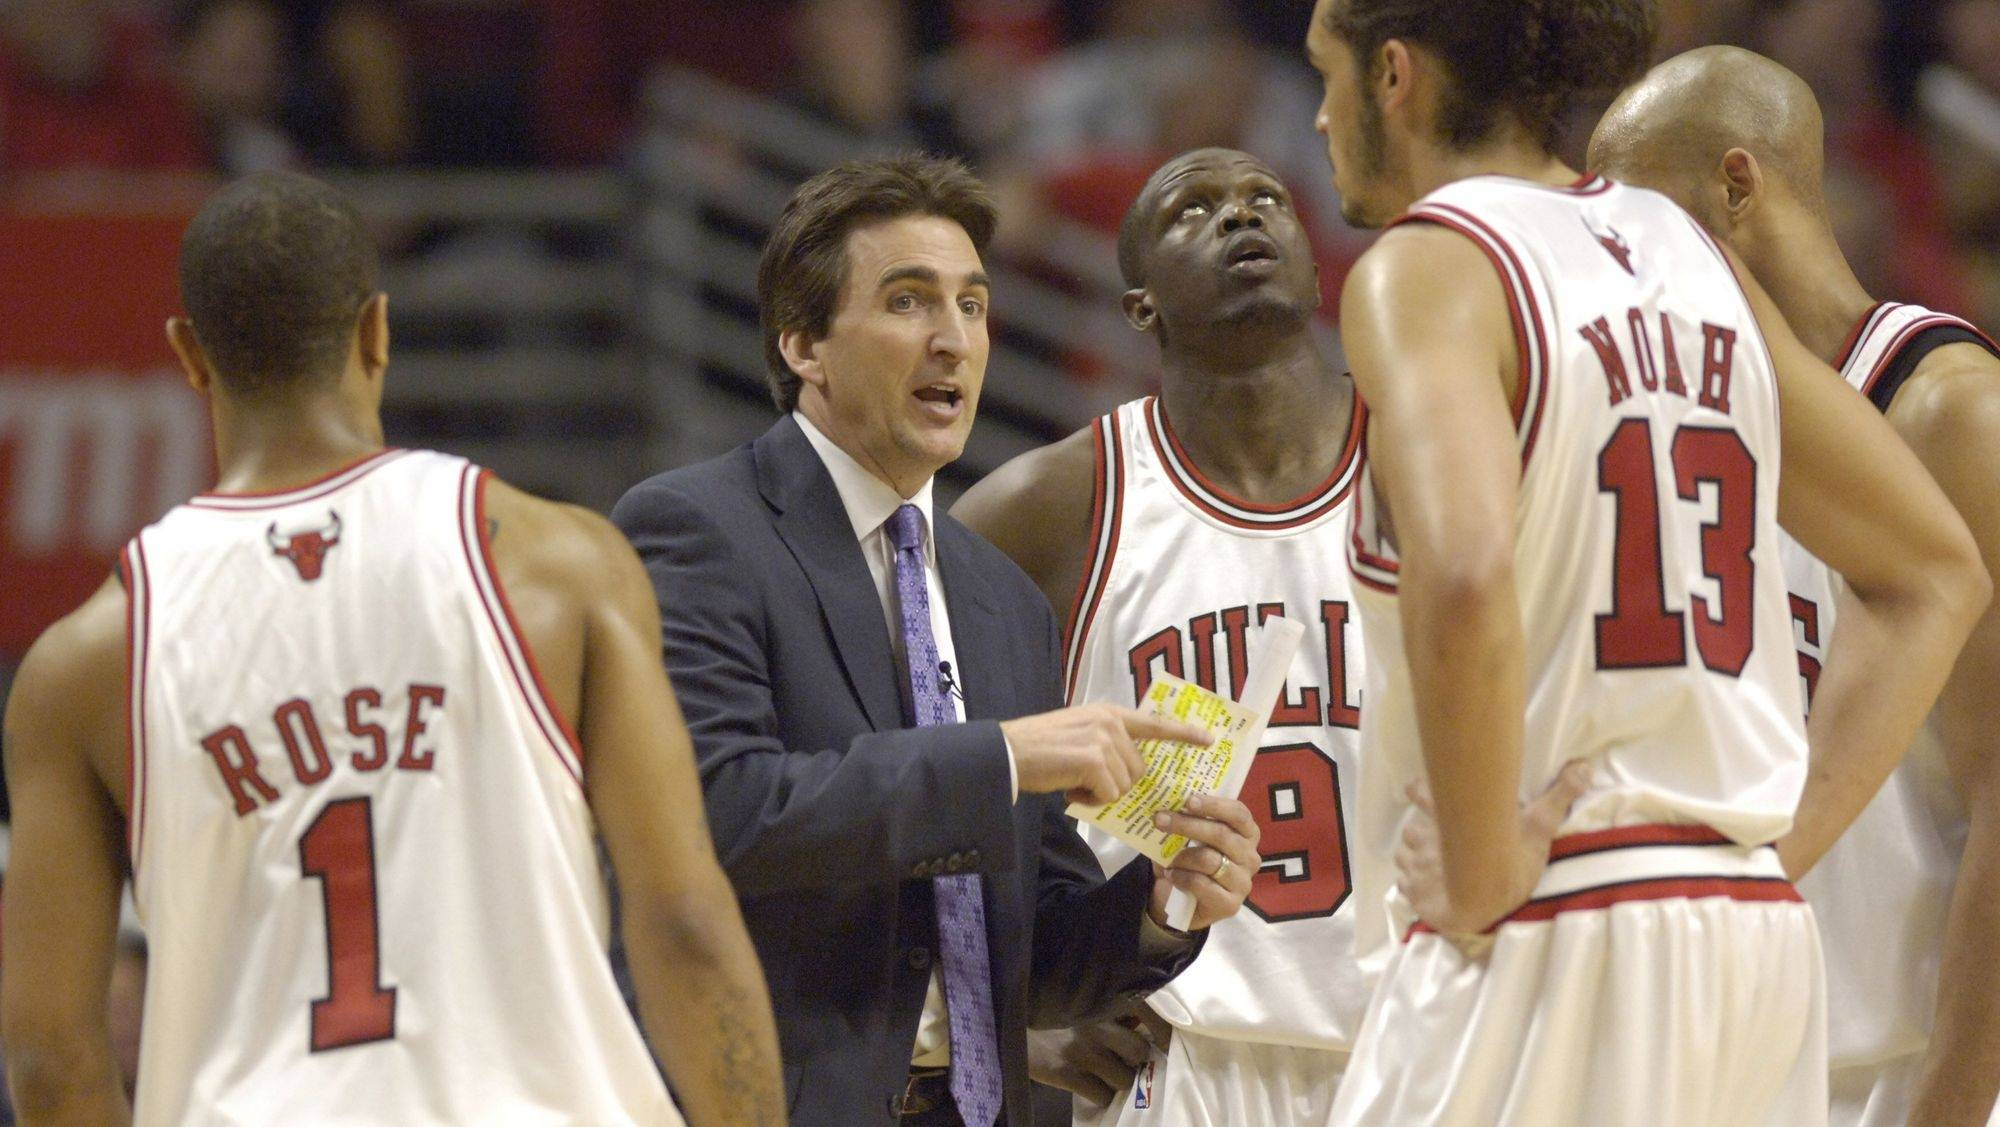 Head coach Vinny Del Negro could be coaching his final game with Bulls Tuesday.